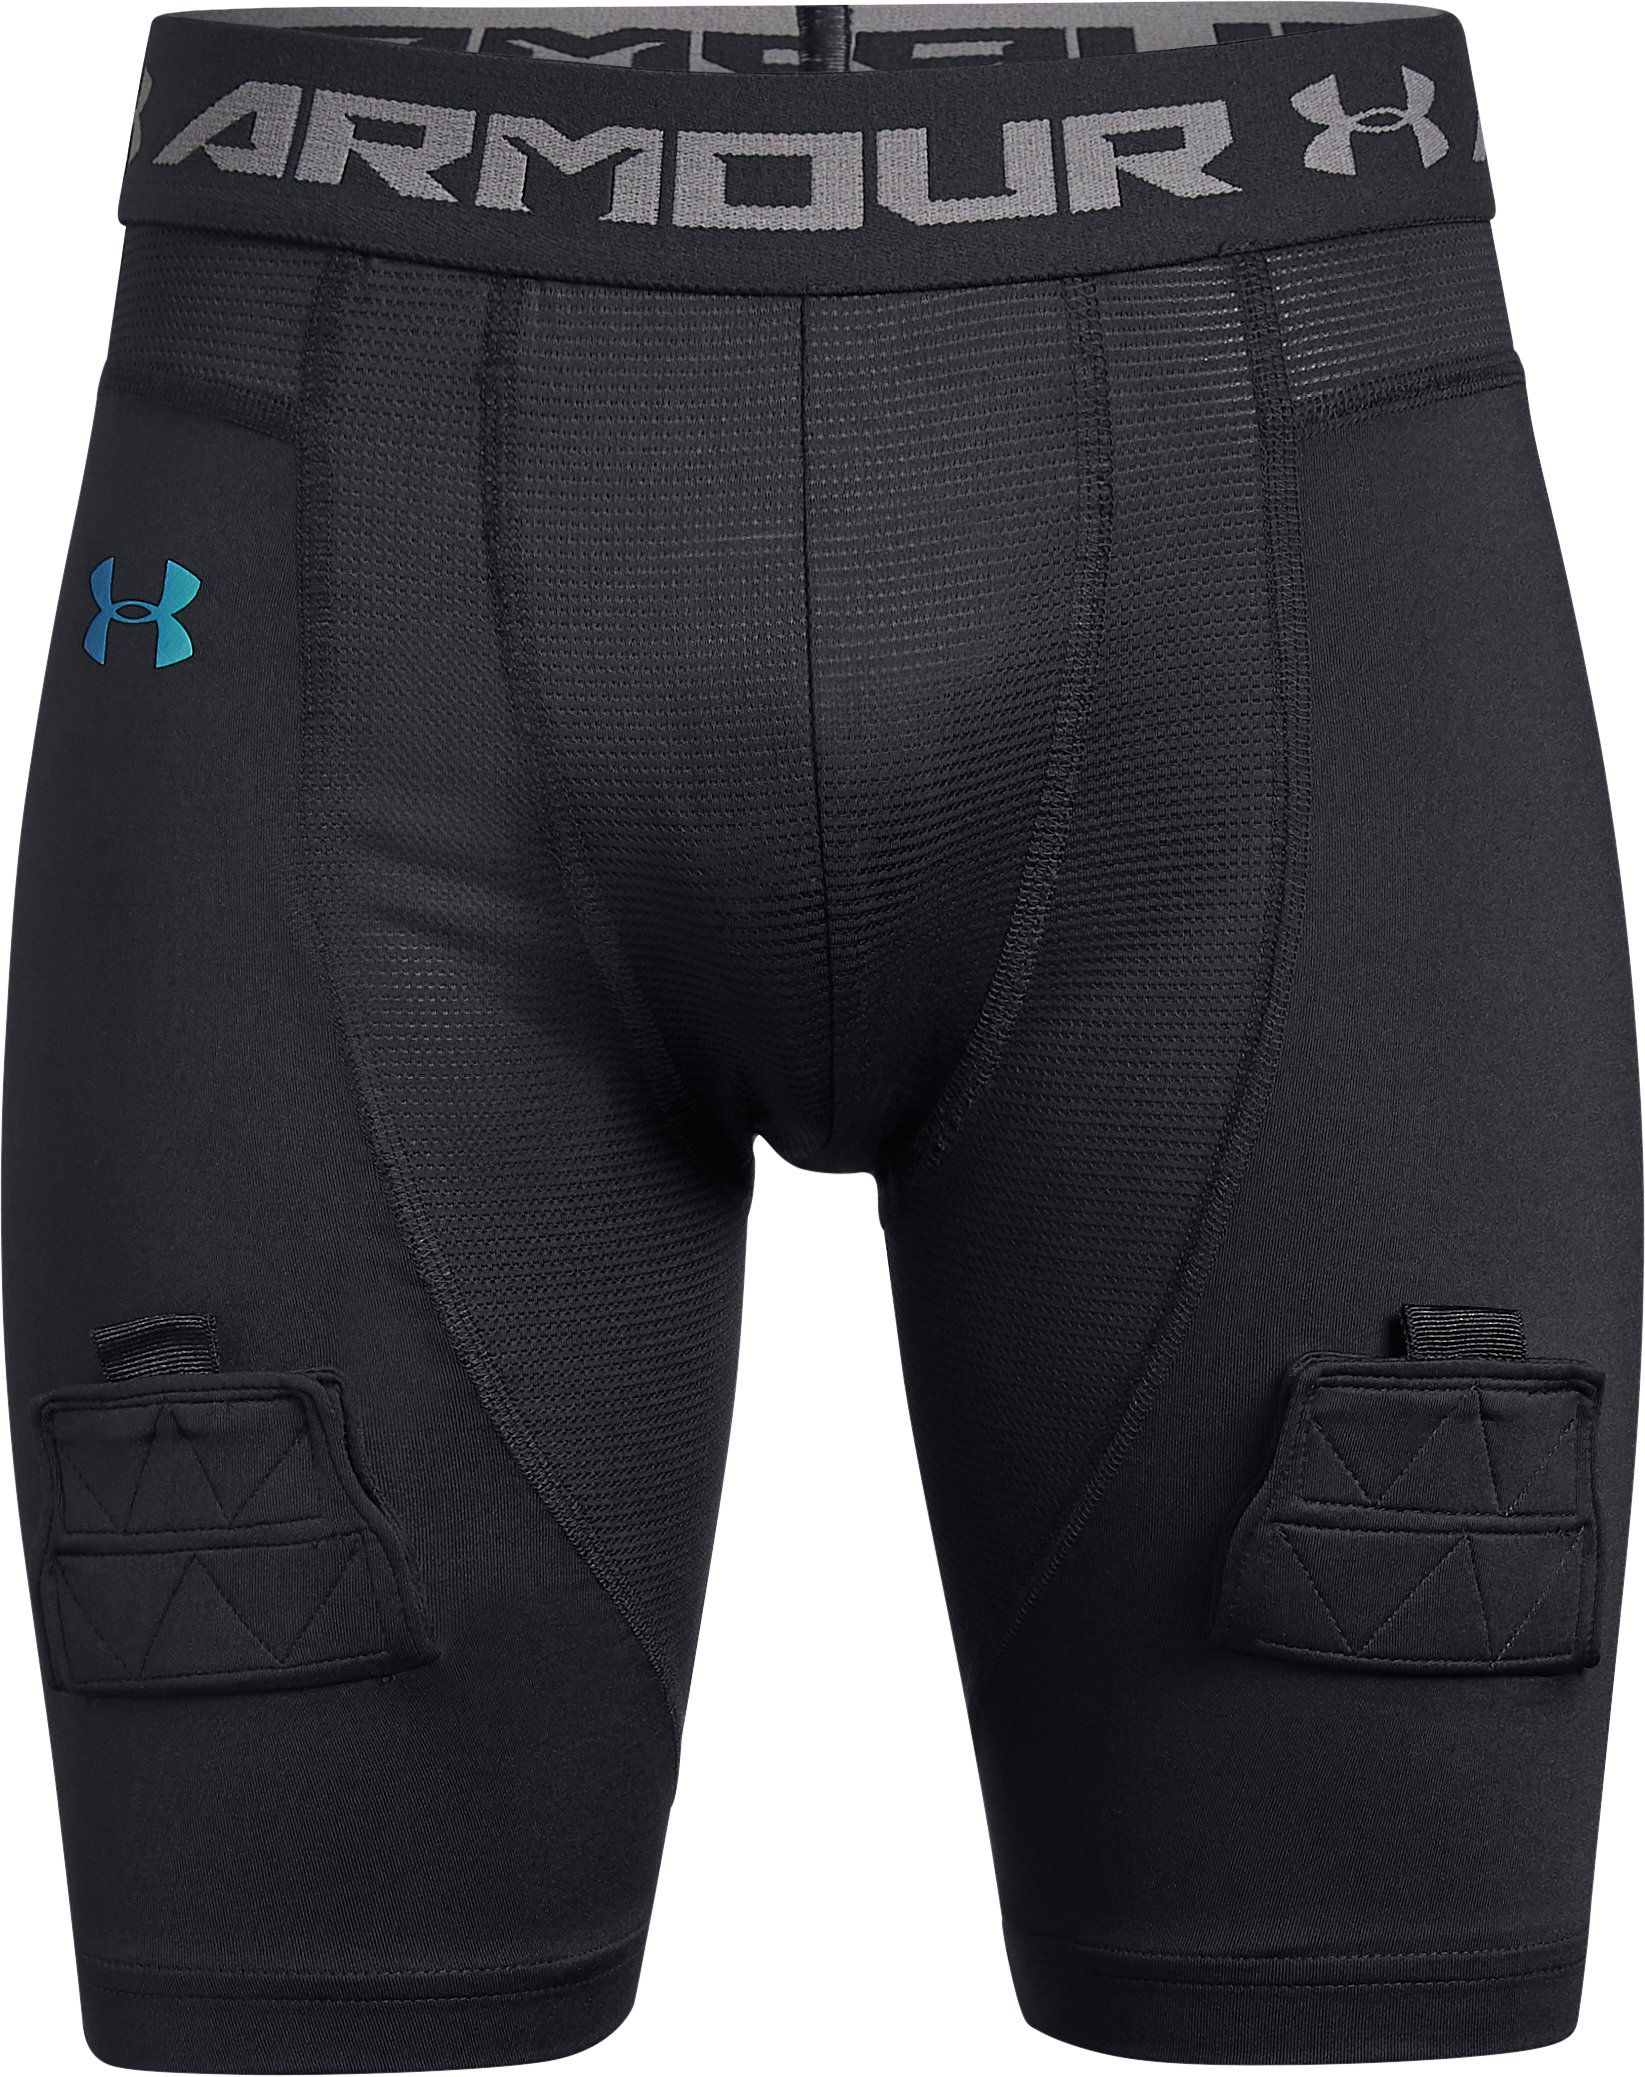 Boys' UA Hockey Shorts, Black , zoomed